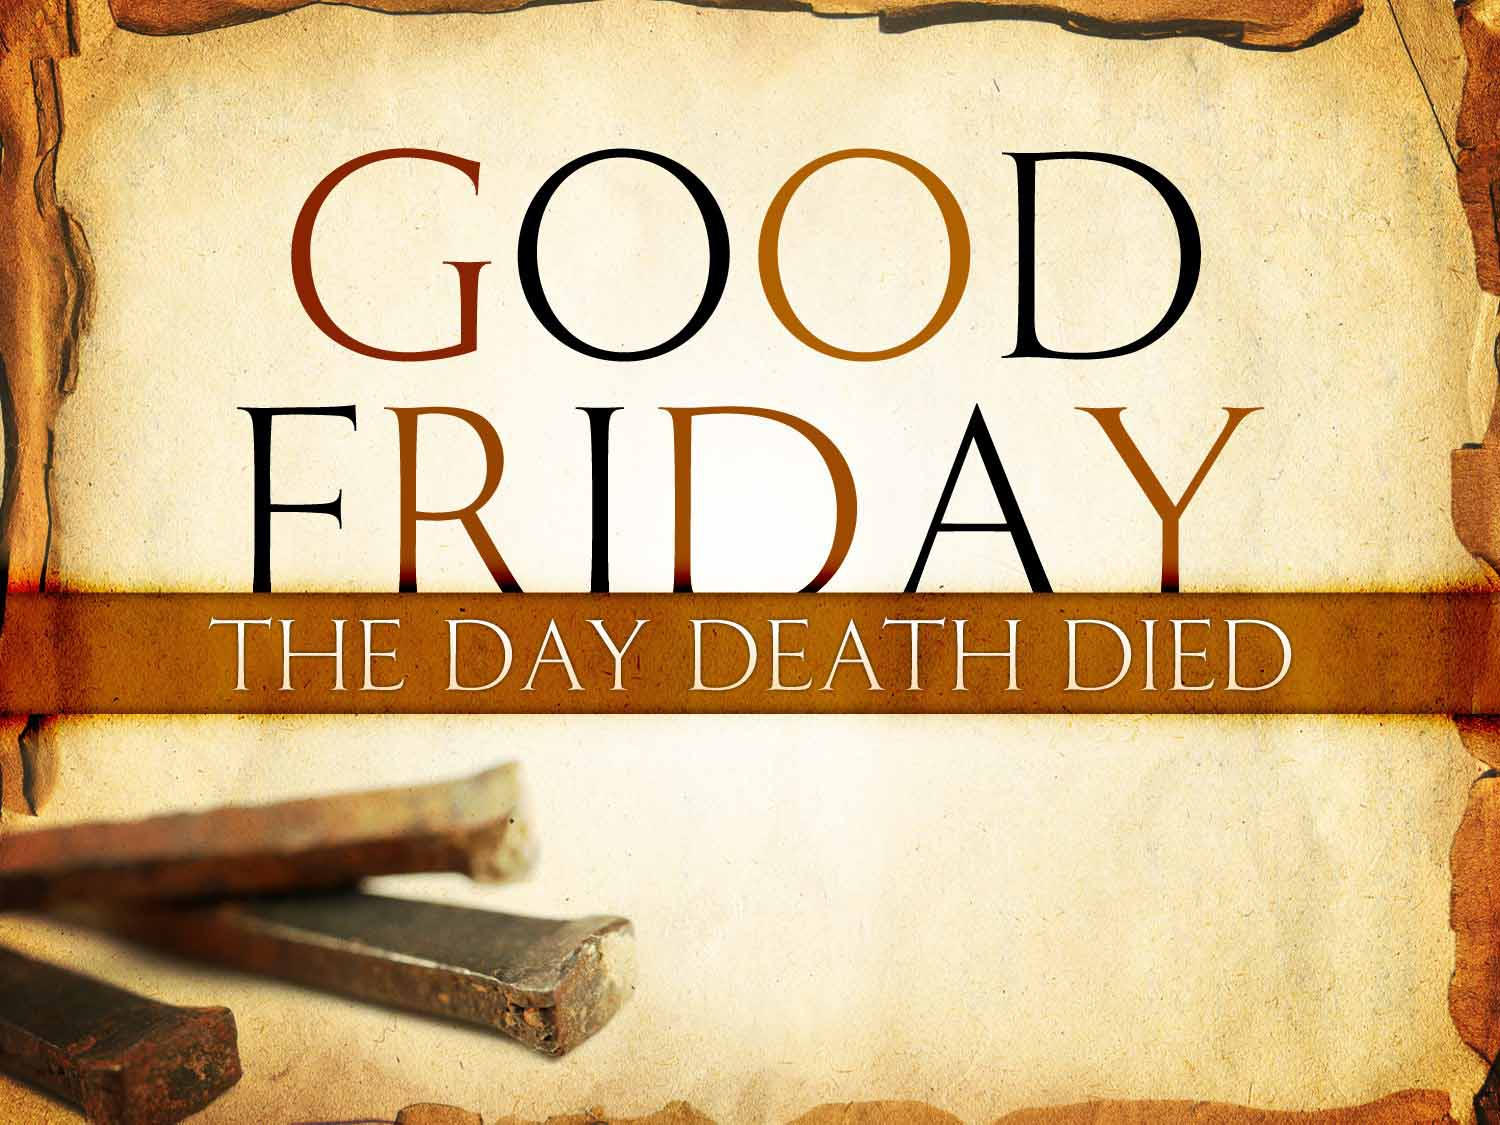 Holy Good Friday Images pics hd wallpaper whatsapp Dp Fb cover